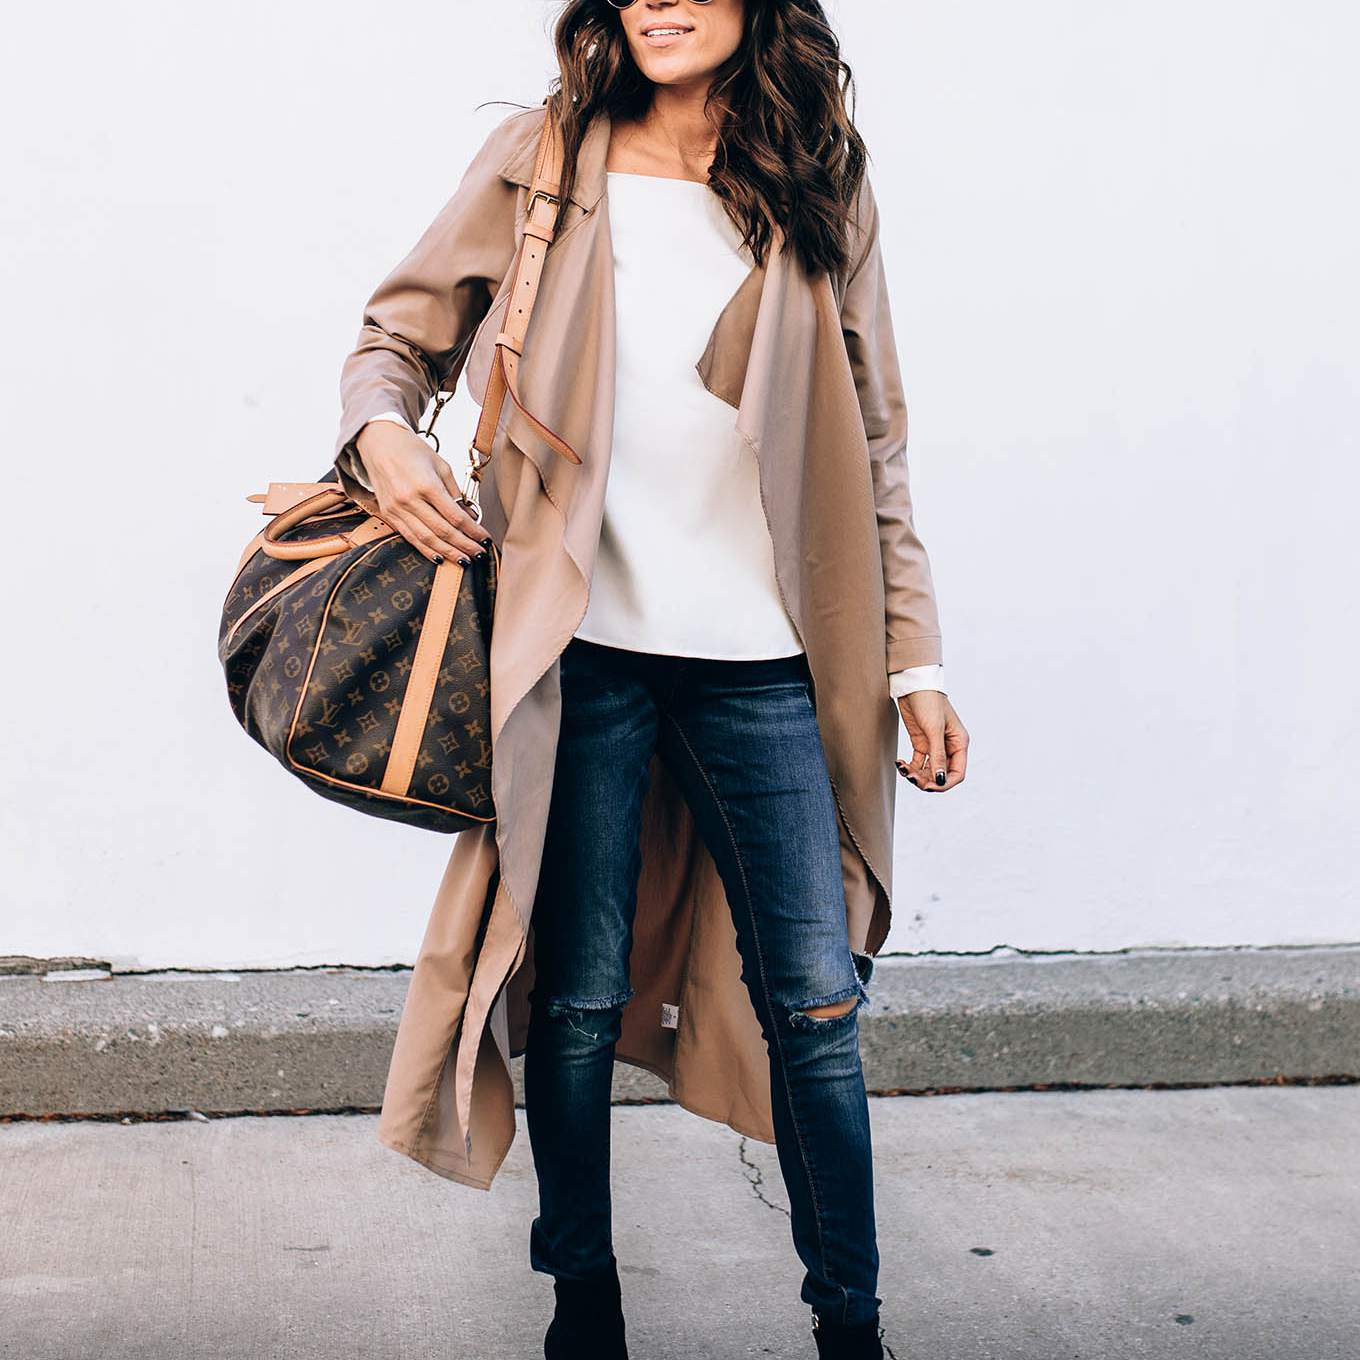 Waterfall coat and skinny jeans outfit